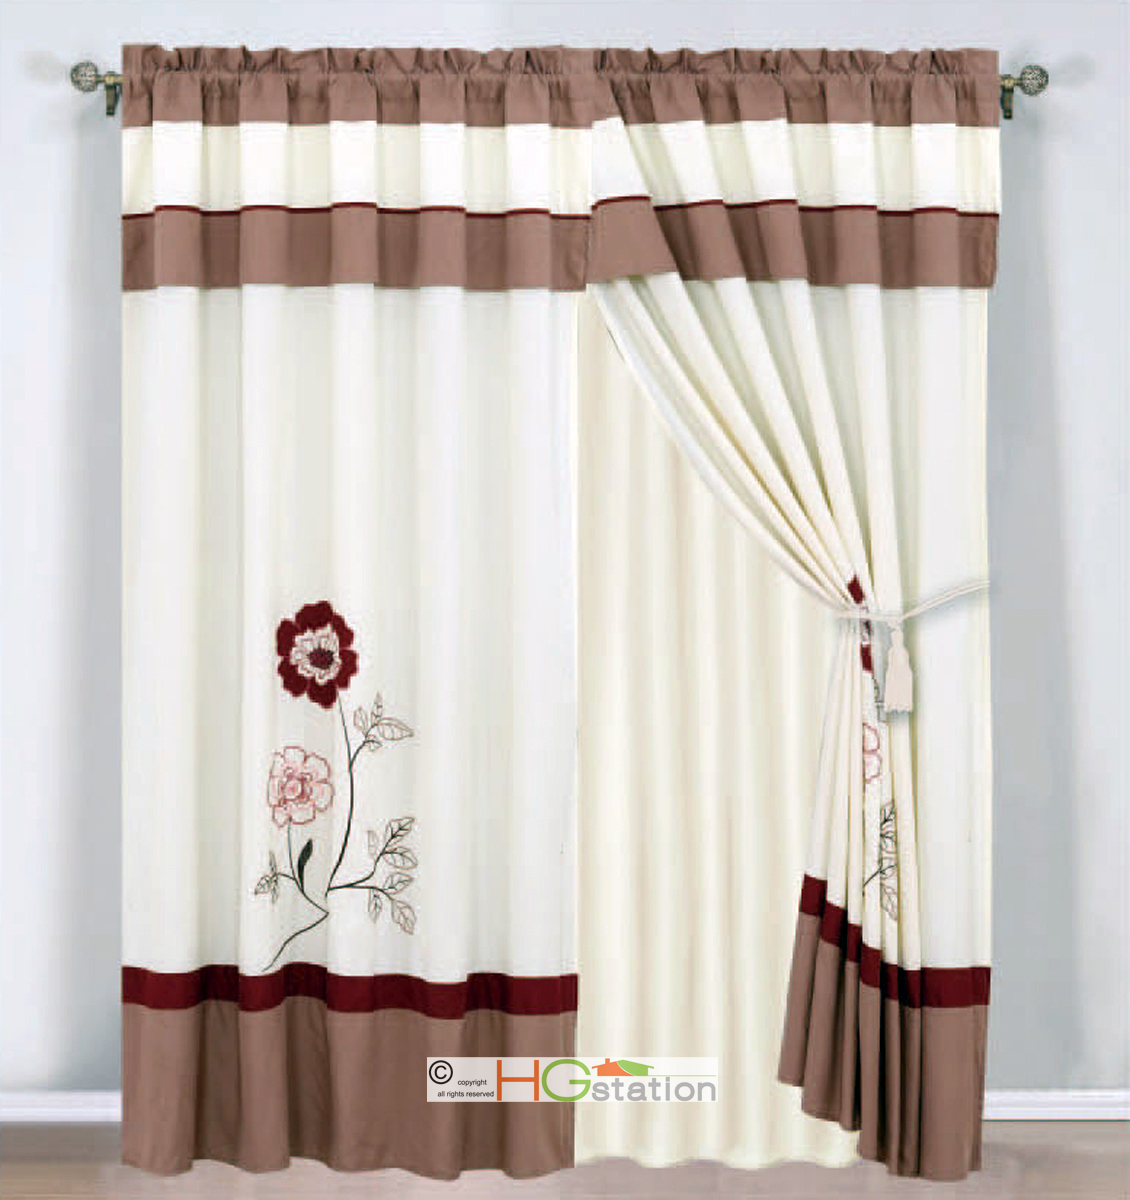 4 Pc Embroidered Striped Floral Curtain Set Ivory Burgundy